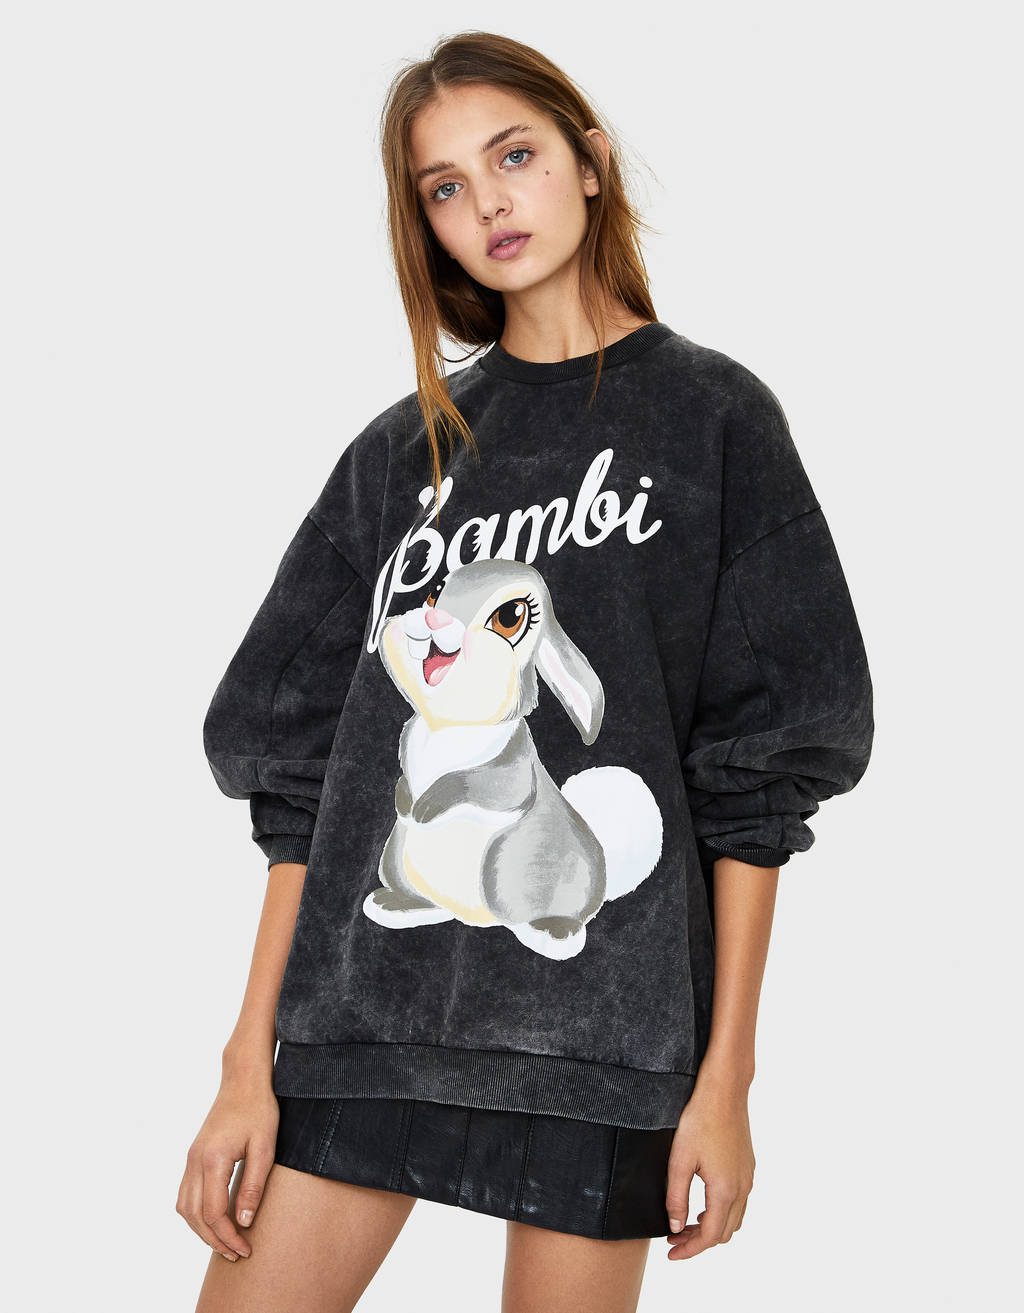 Bambi sweater